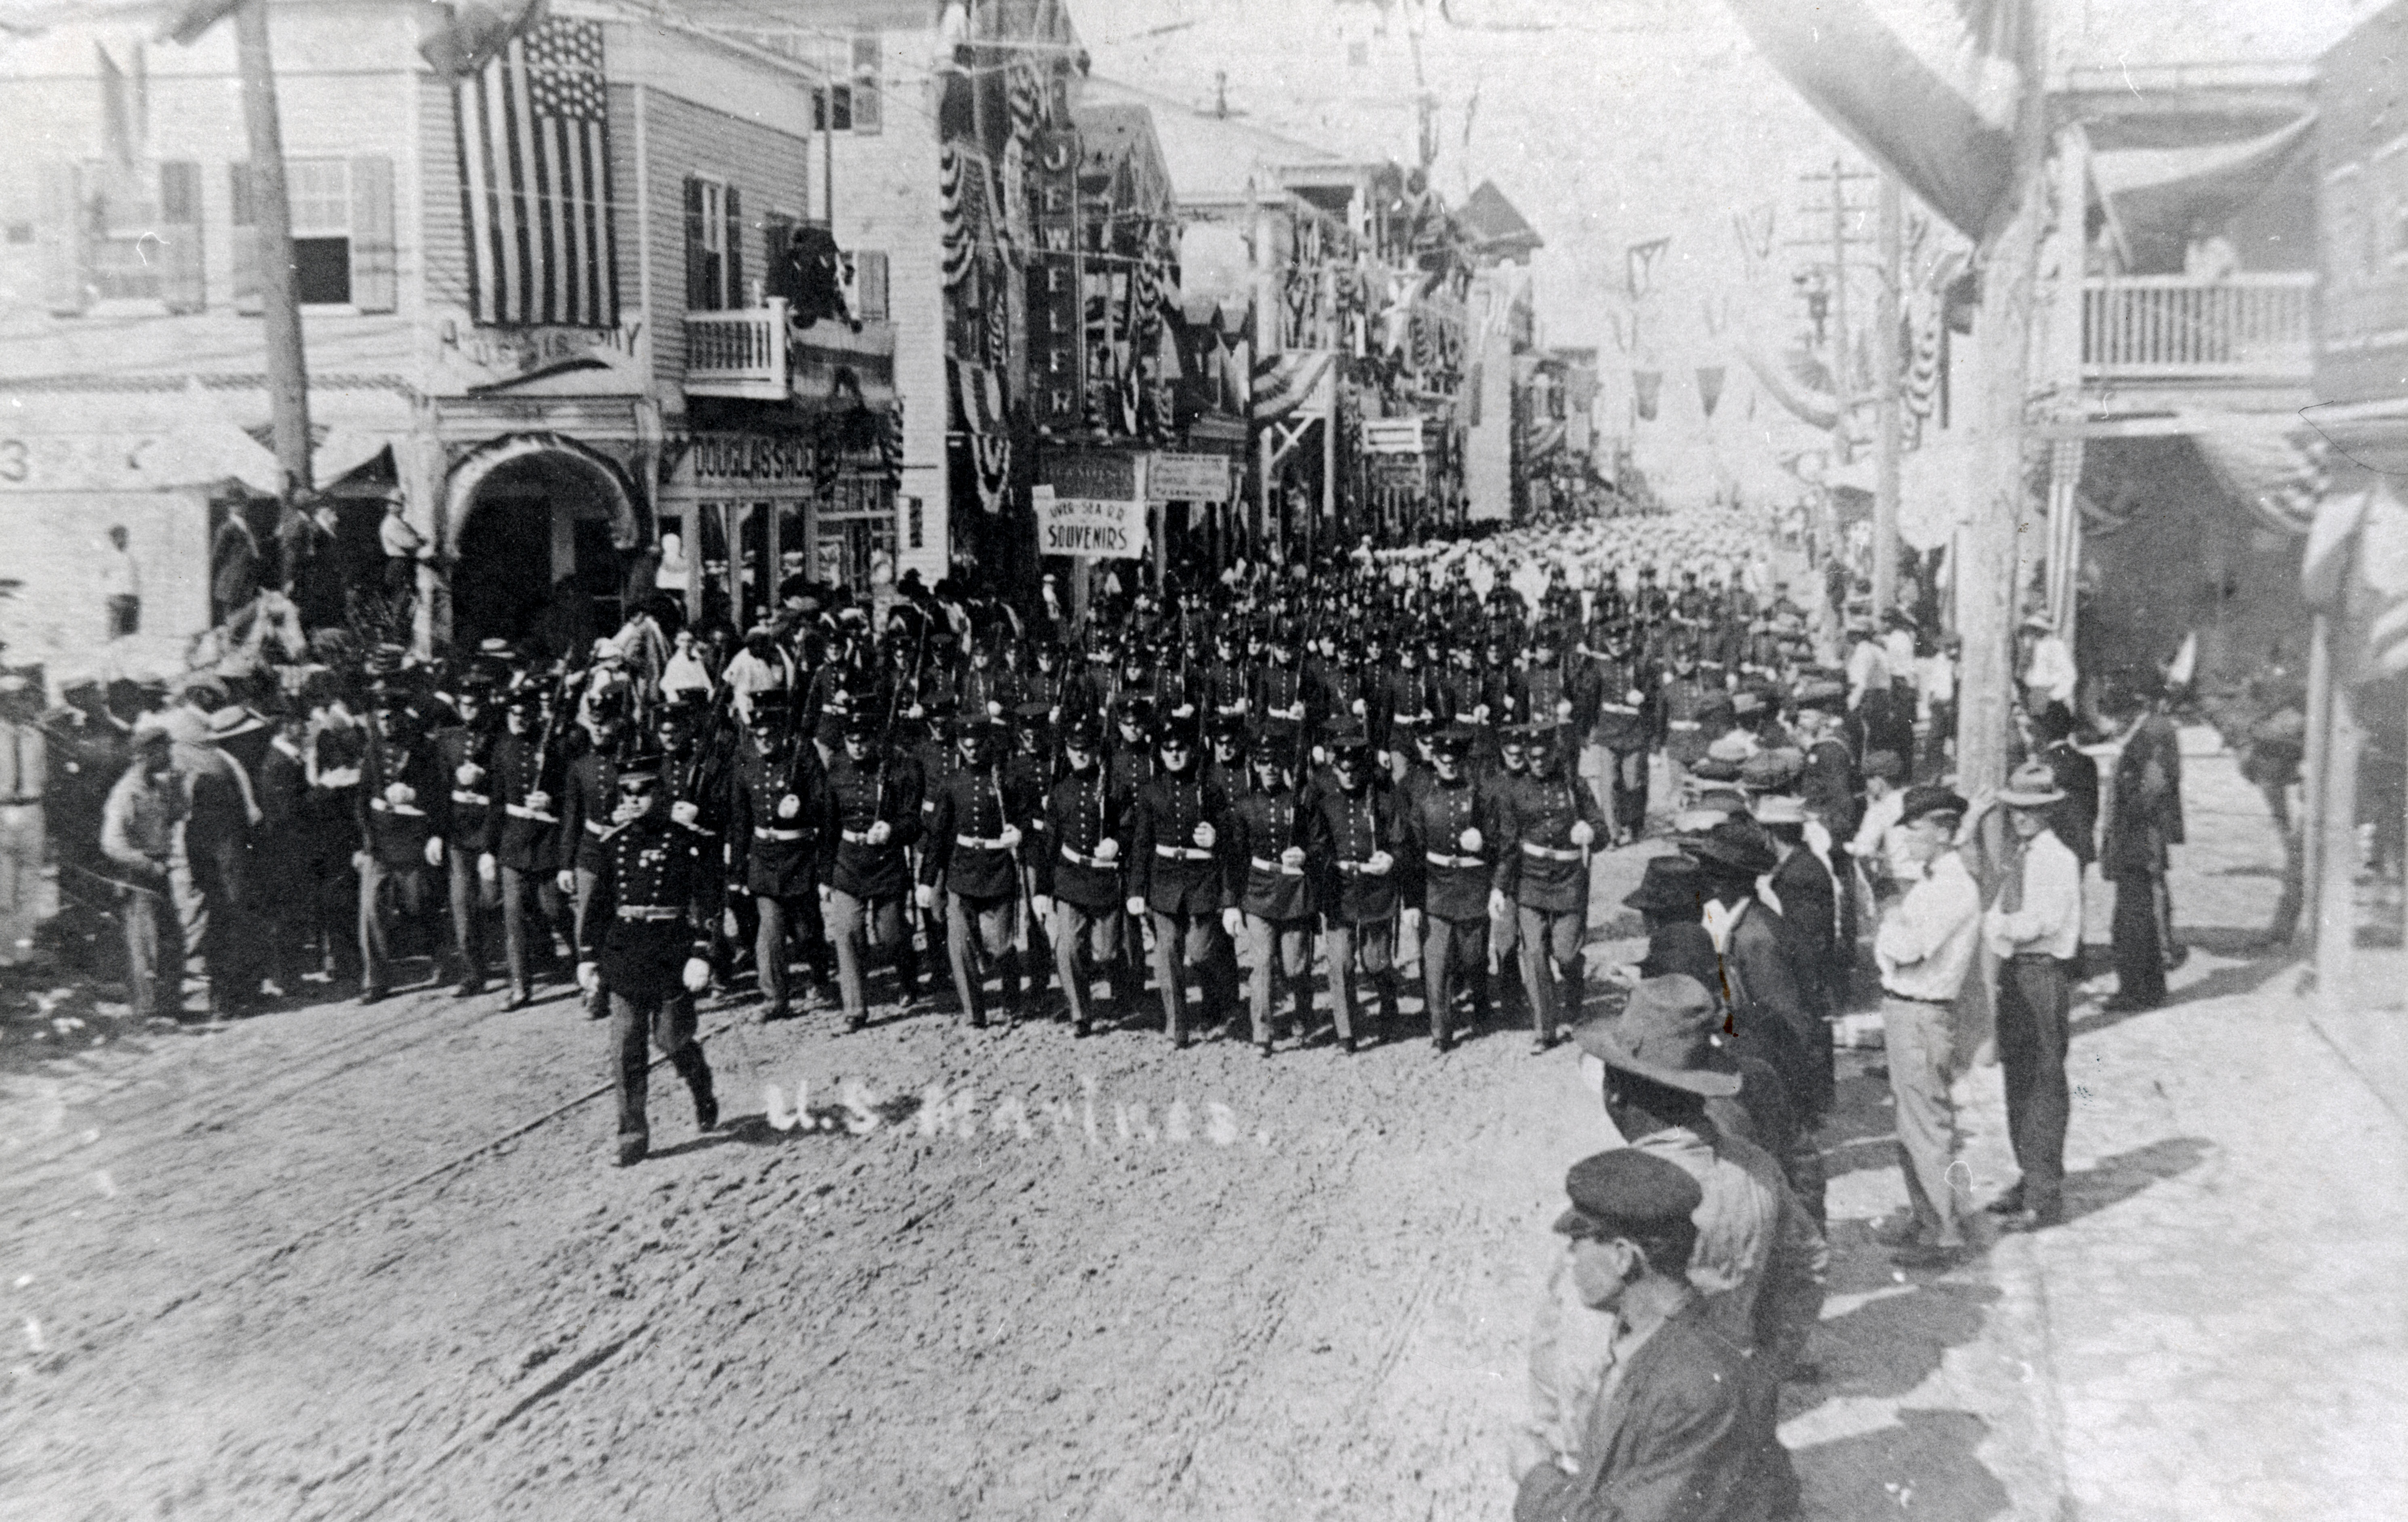 Marines marching on Duval Street in parade for Key West rail. Florida Keys Public Library. Retrieved from